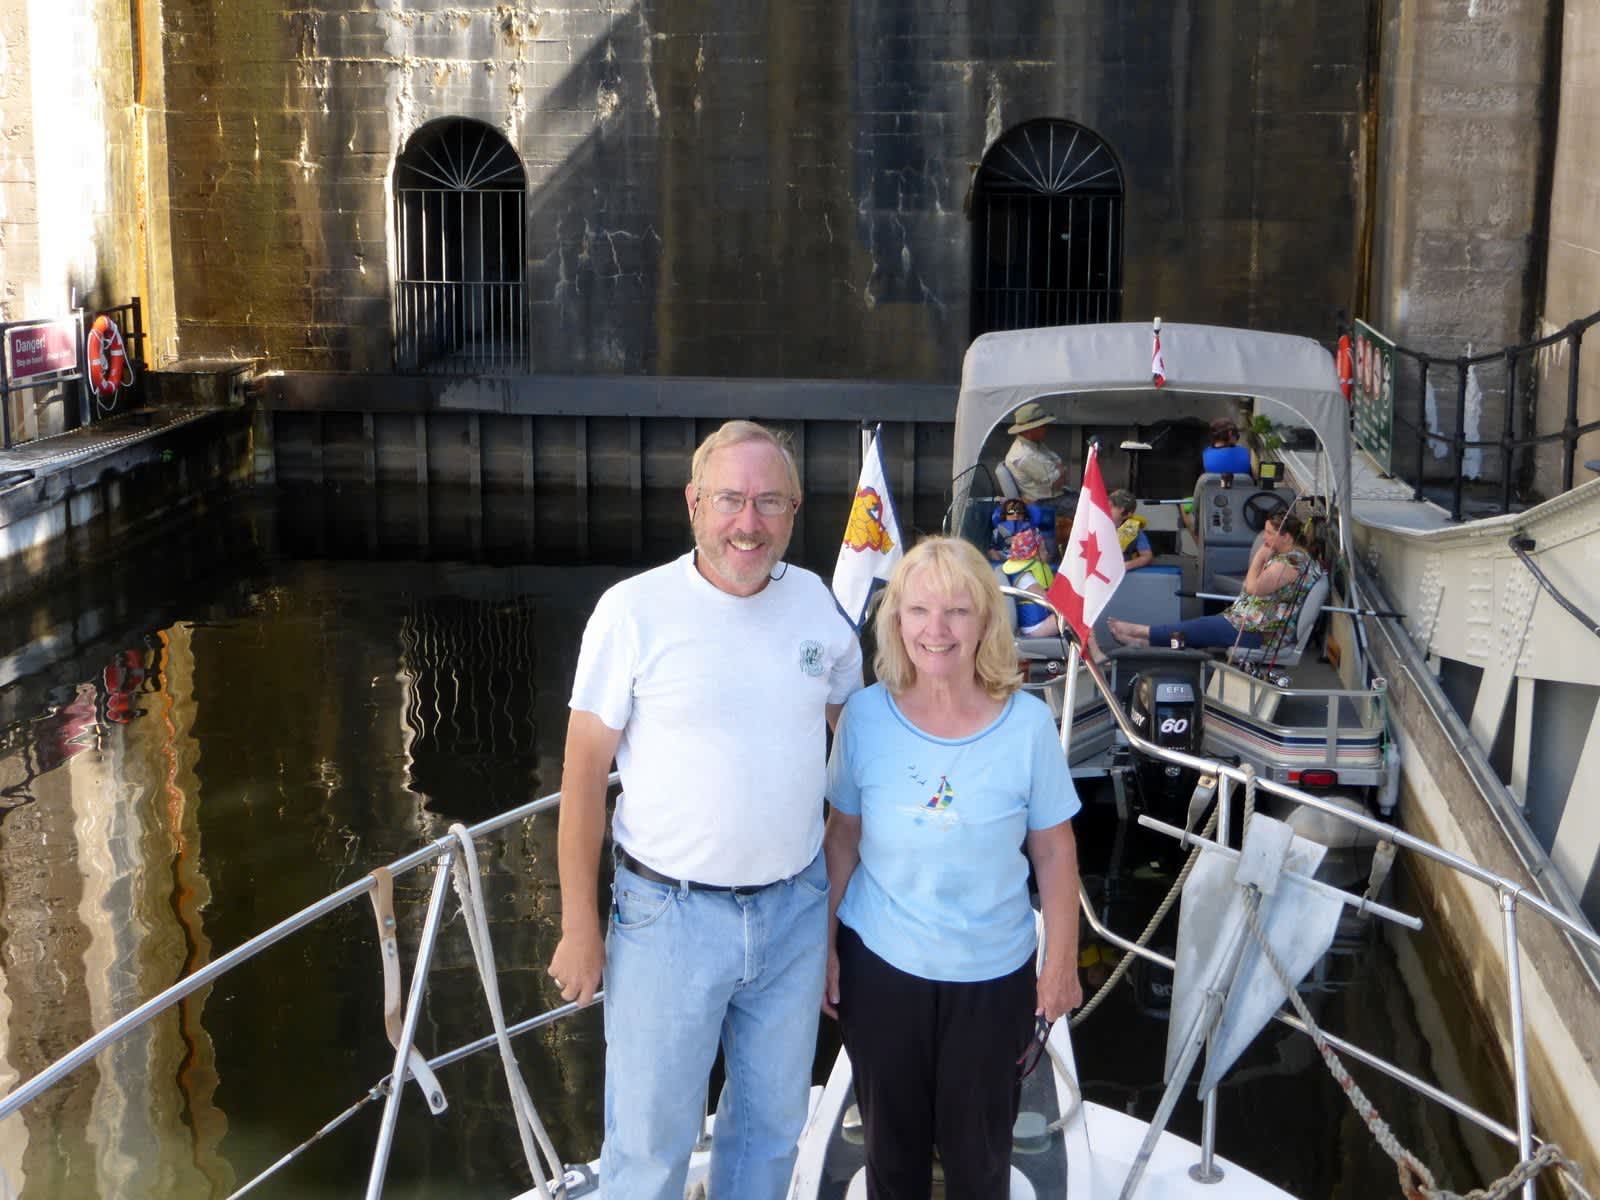 Everett & Sharon from Harker Heights, Texas, United States